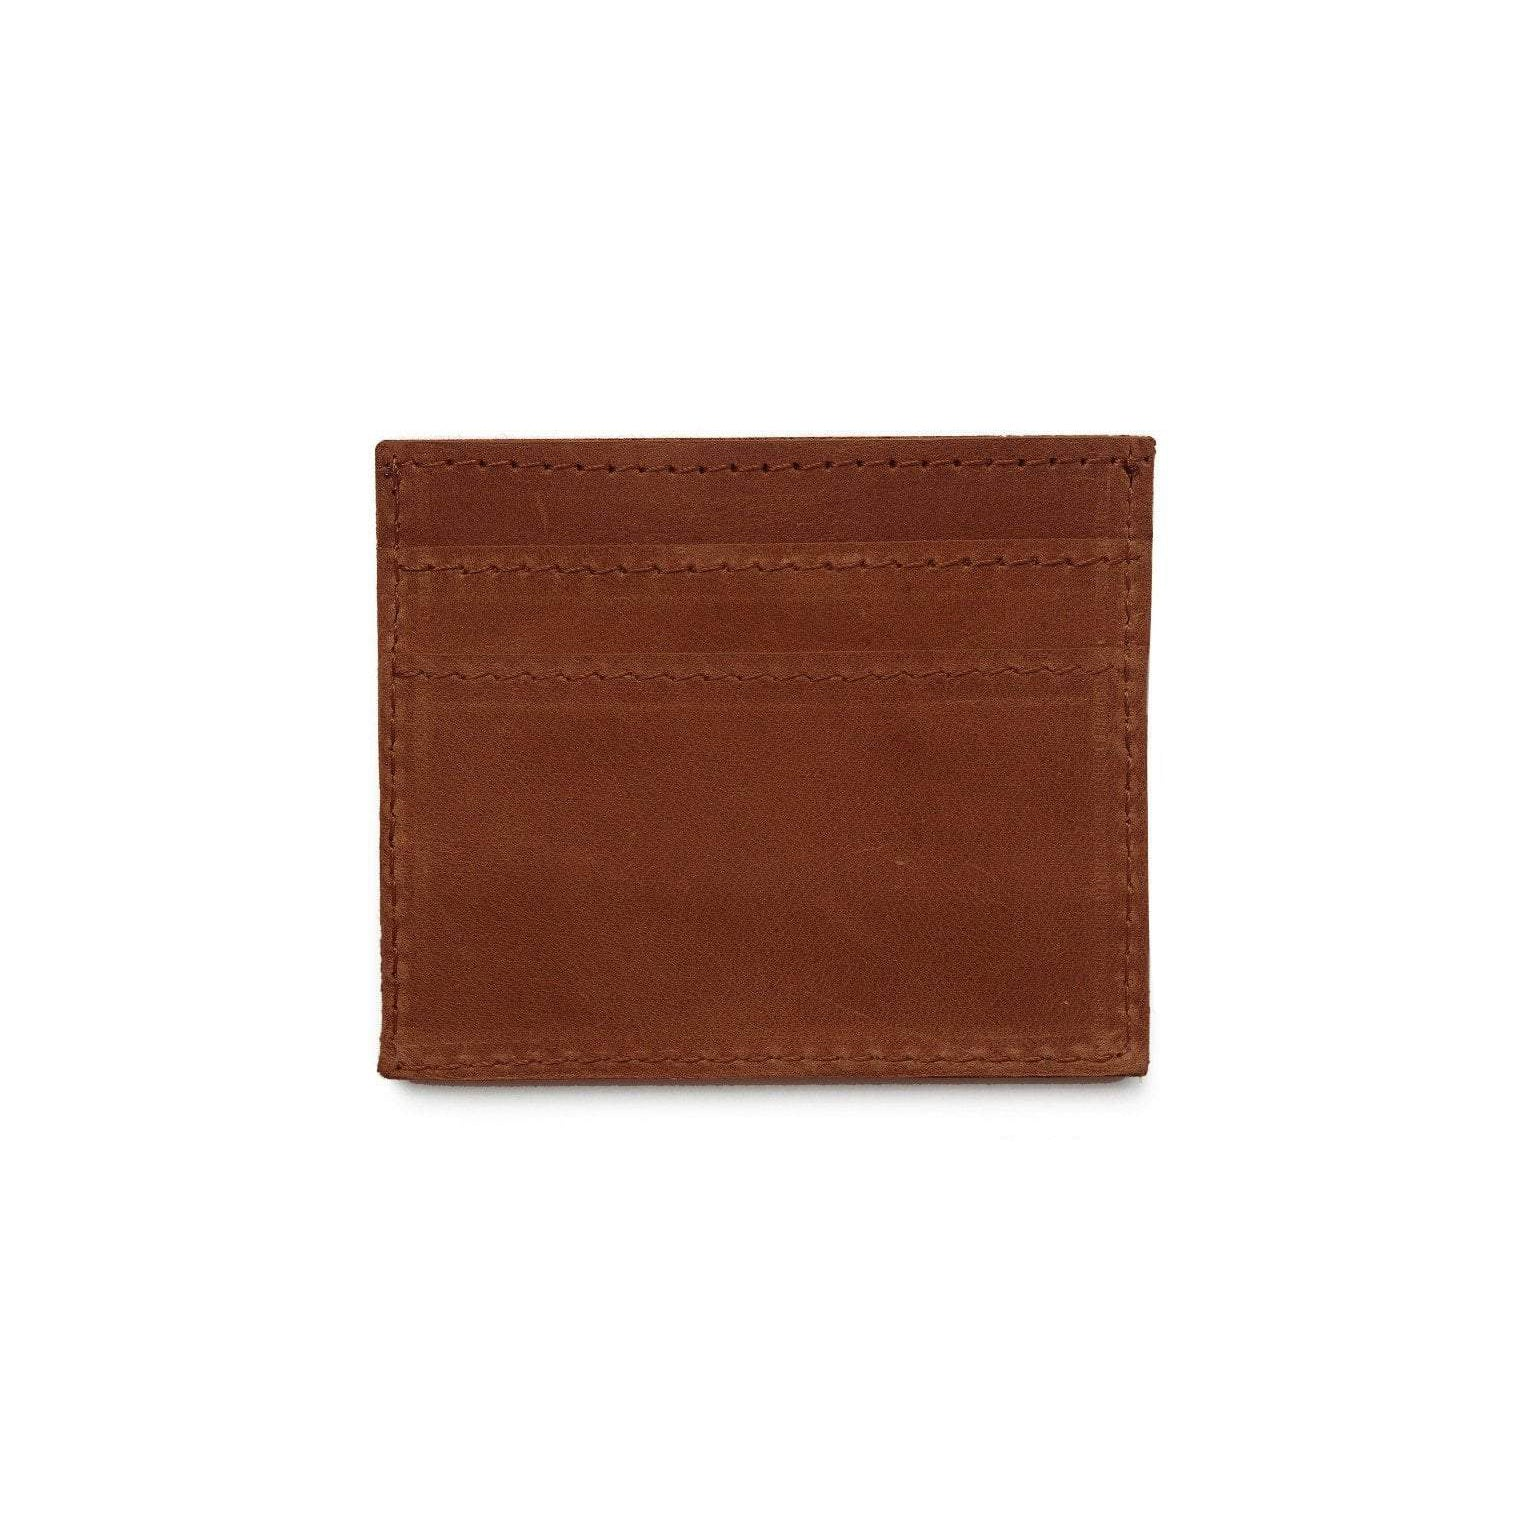 ABLE Card Wallet